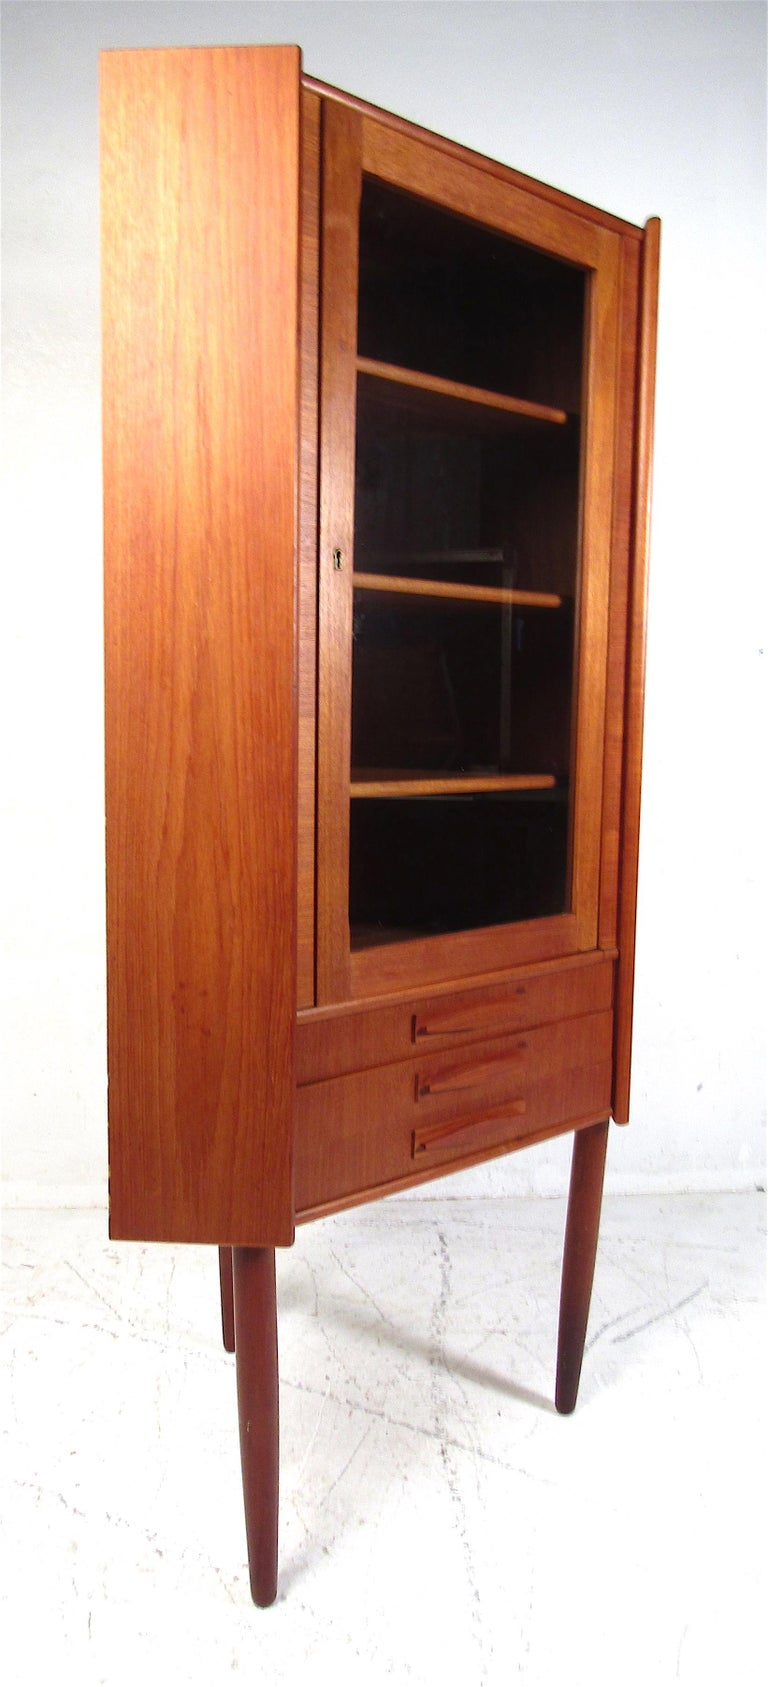 This stunning vintage modern Danish corner cabinet features three shelves and three small drawers on the base. An unusual design that can fit comfortably in any corner of the room. A glass-front cabinet door allows this to function as a display